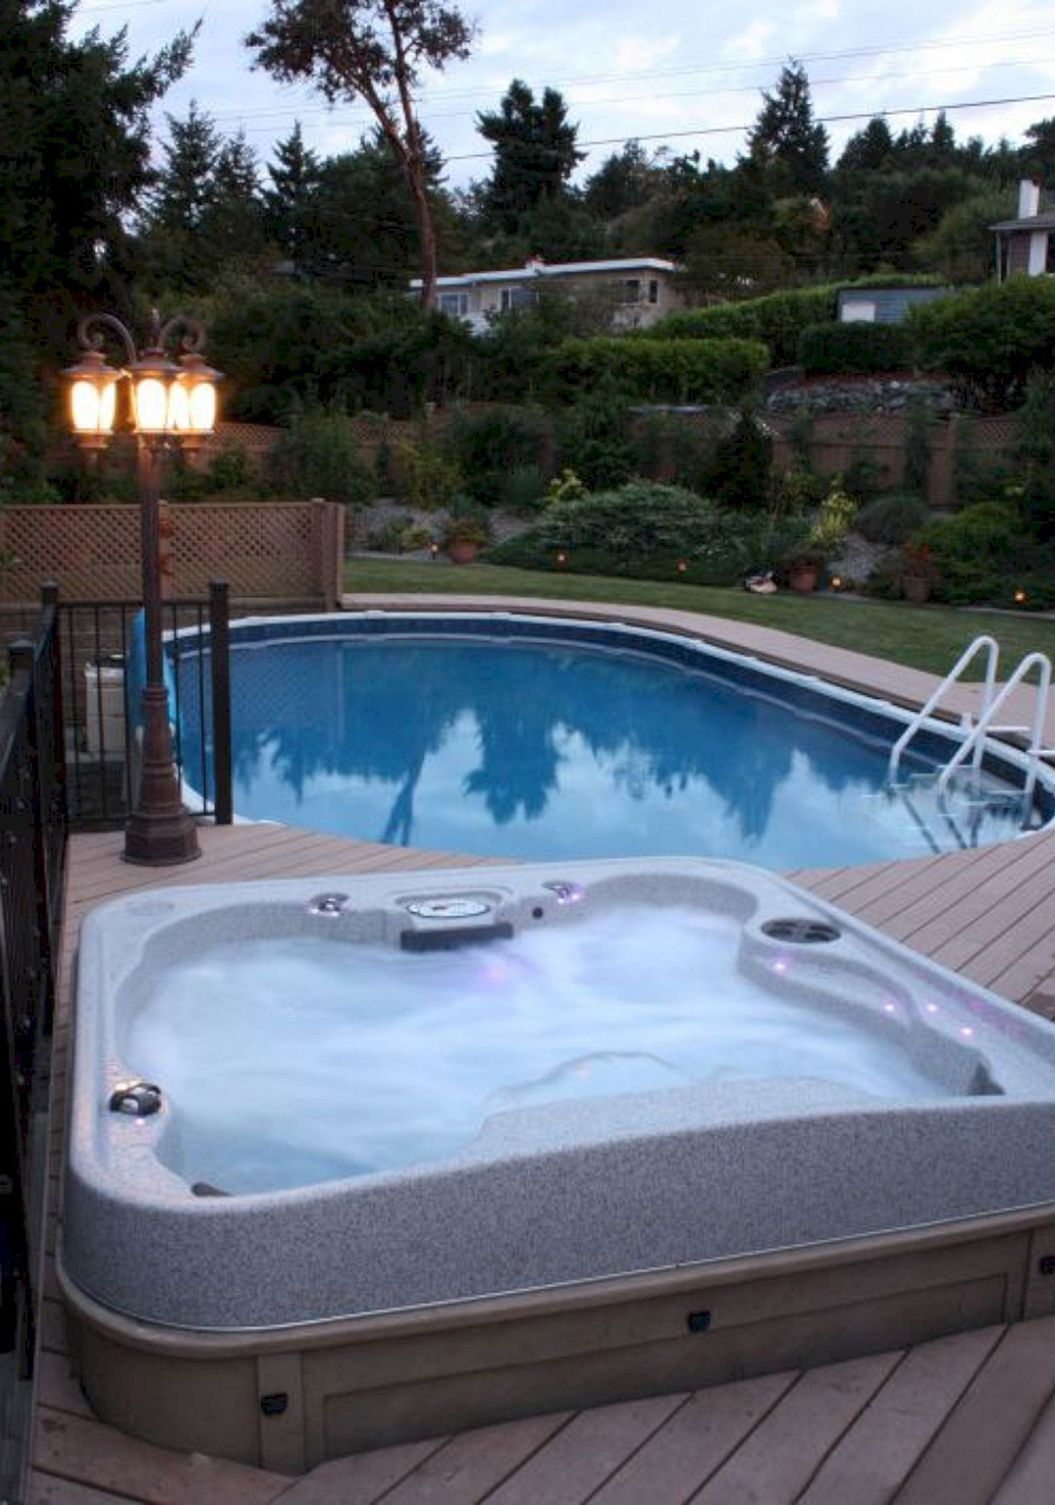 Top 24 diy above ground pool ideas on a budget varios for Above ground pool ideas on a budget